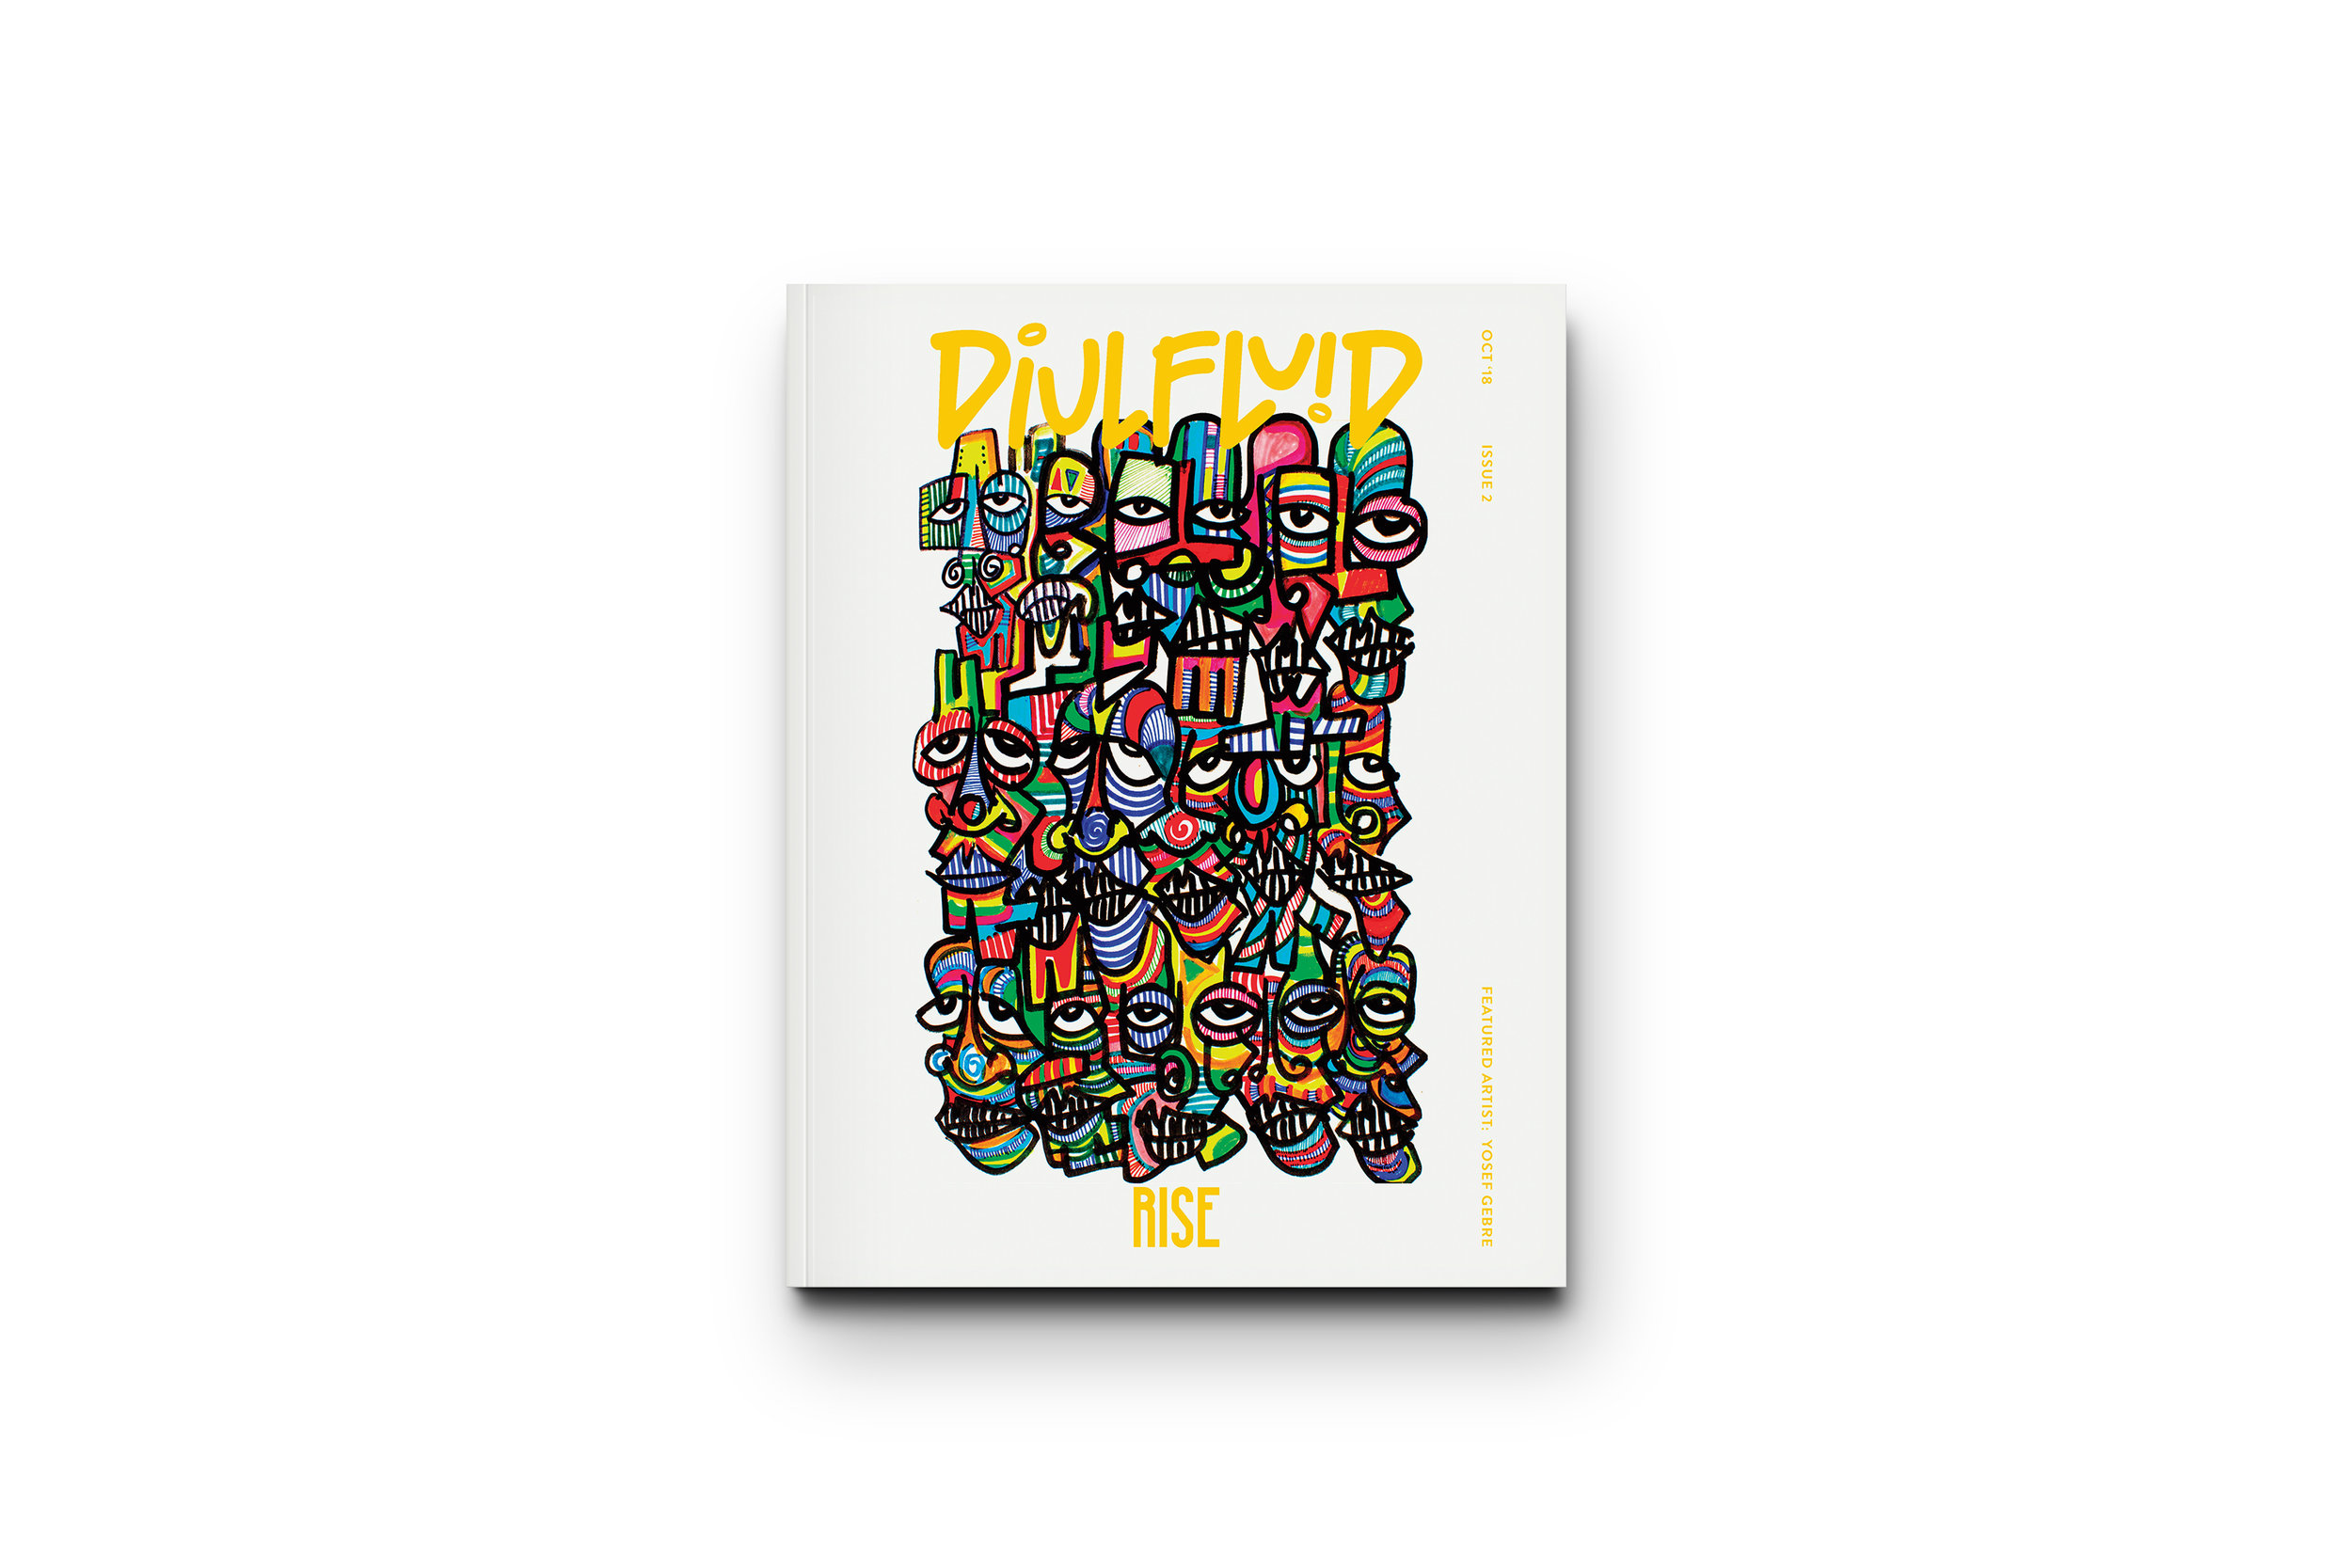 issue no. 2 - sold out